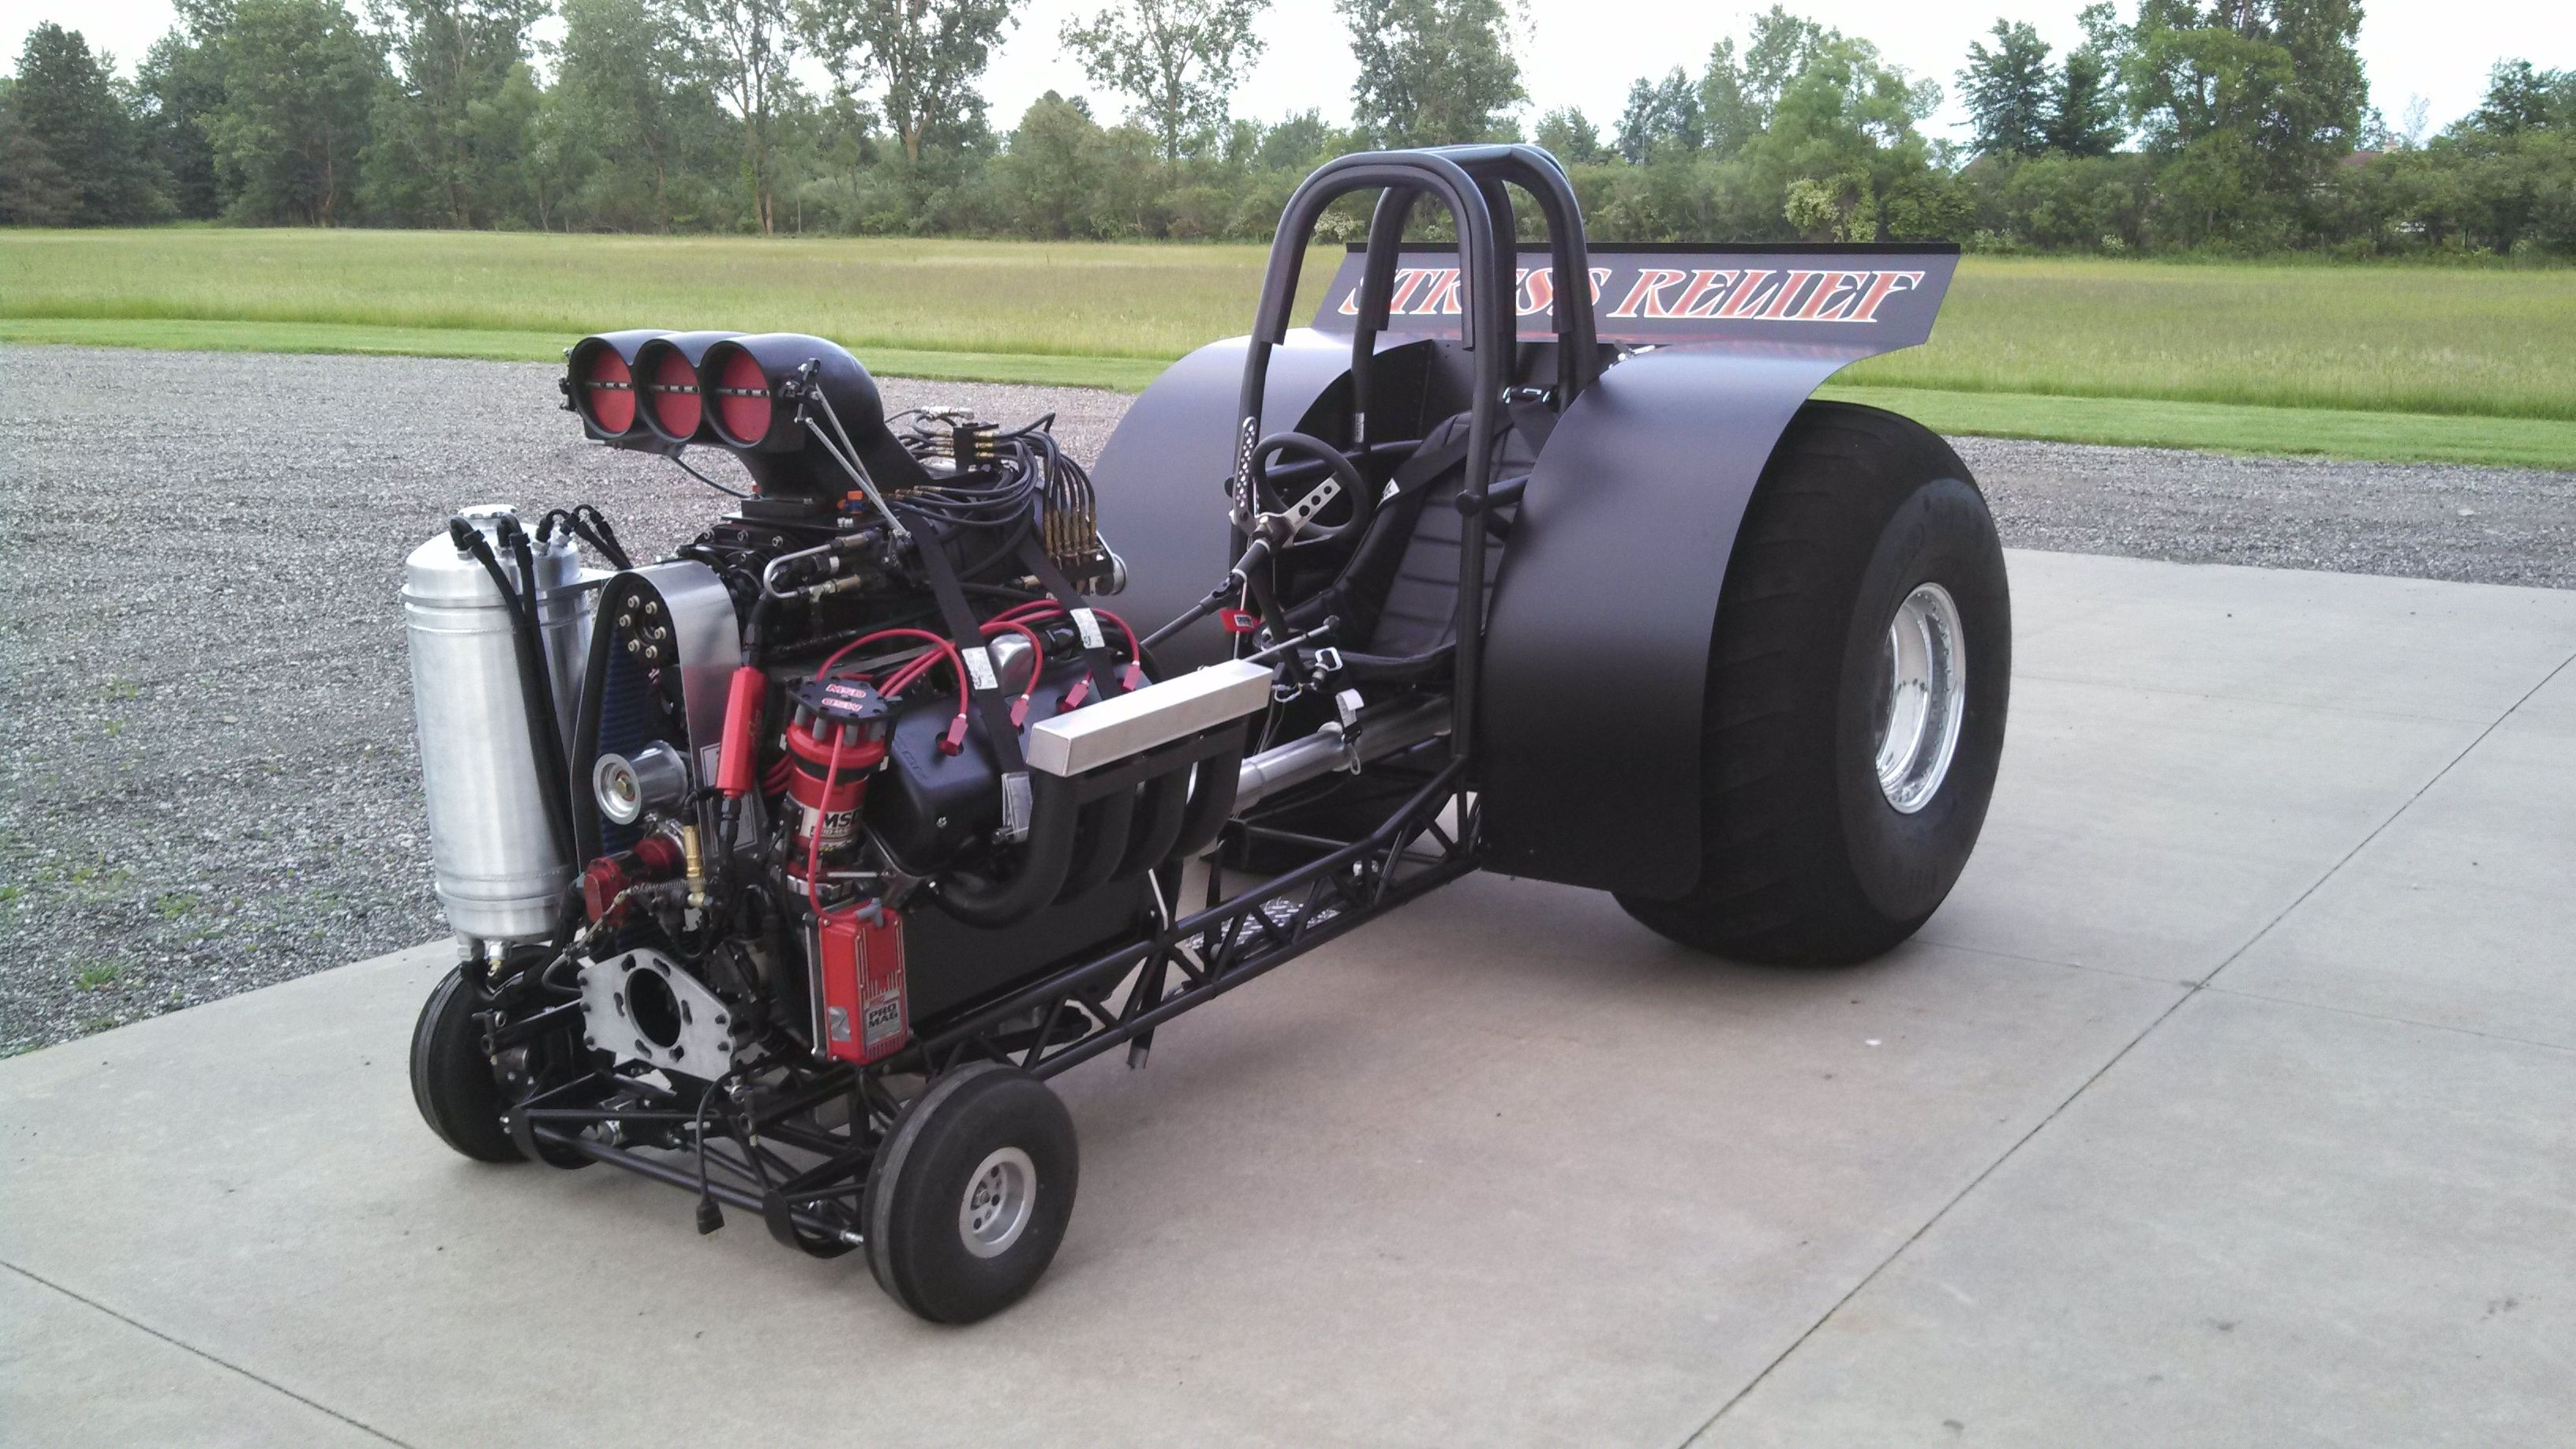 Todd Bultman / Stress Relief / Modified Mini | pullers